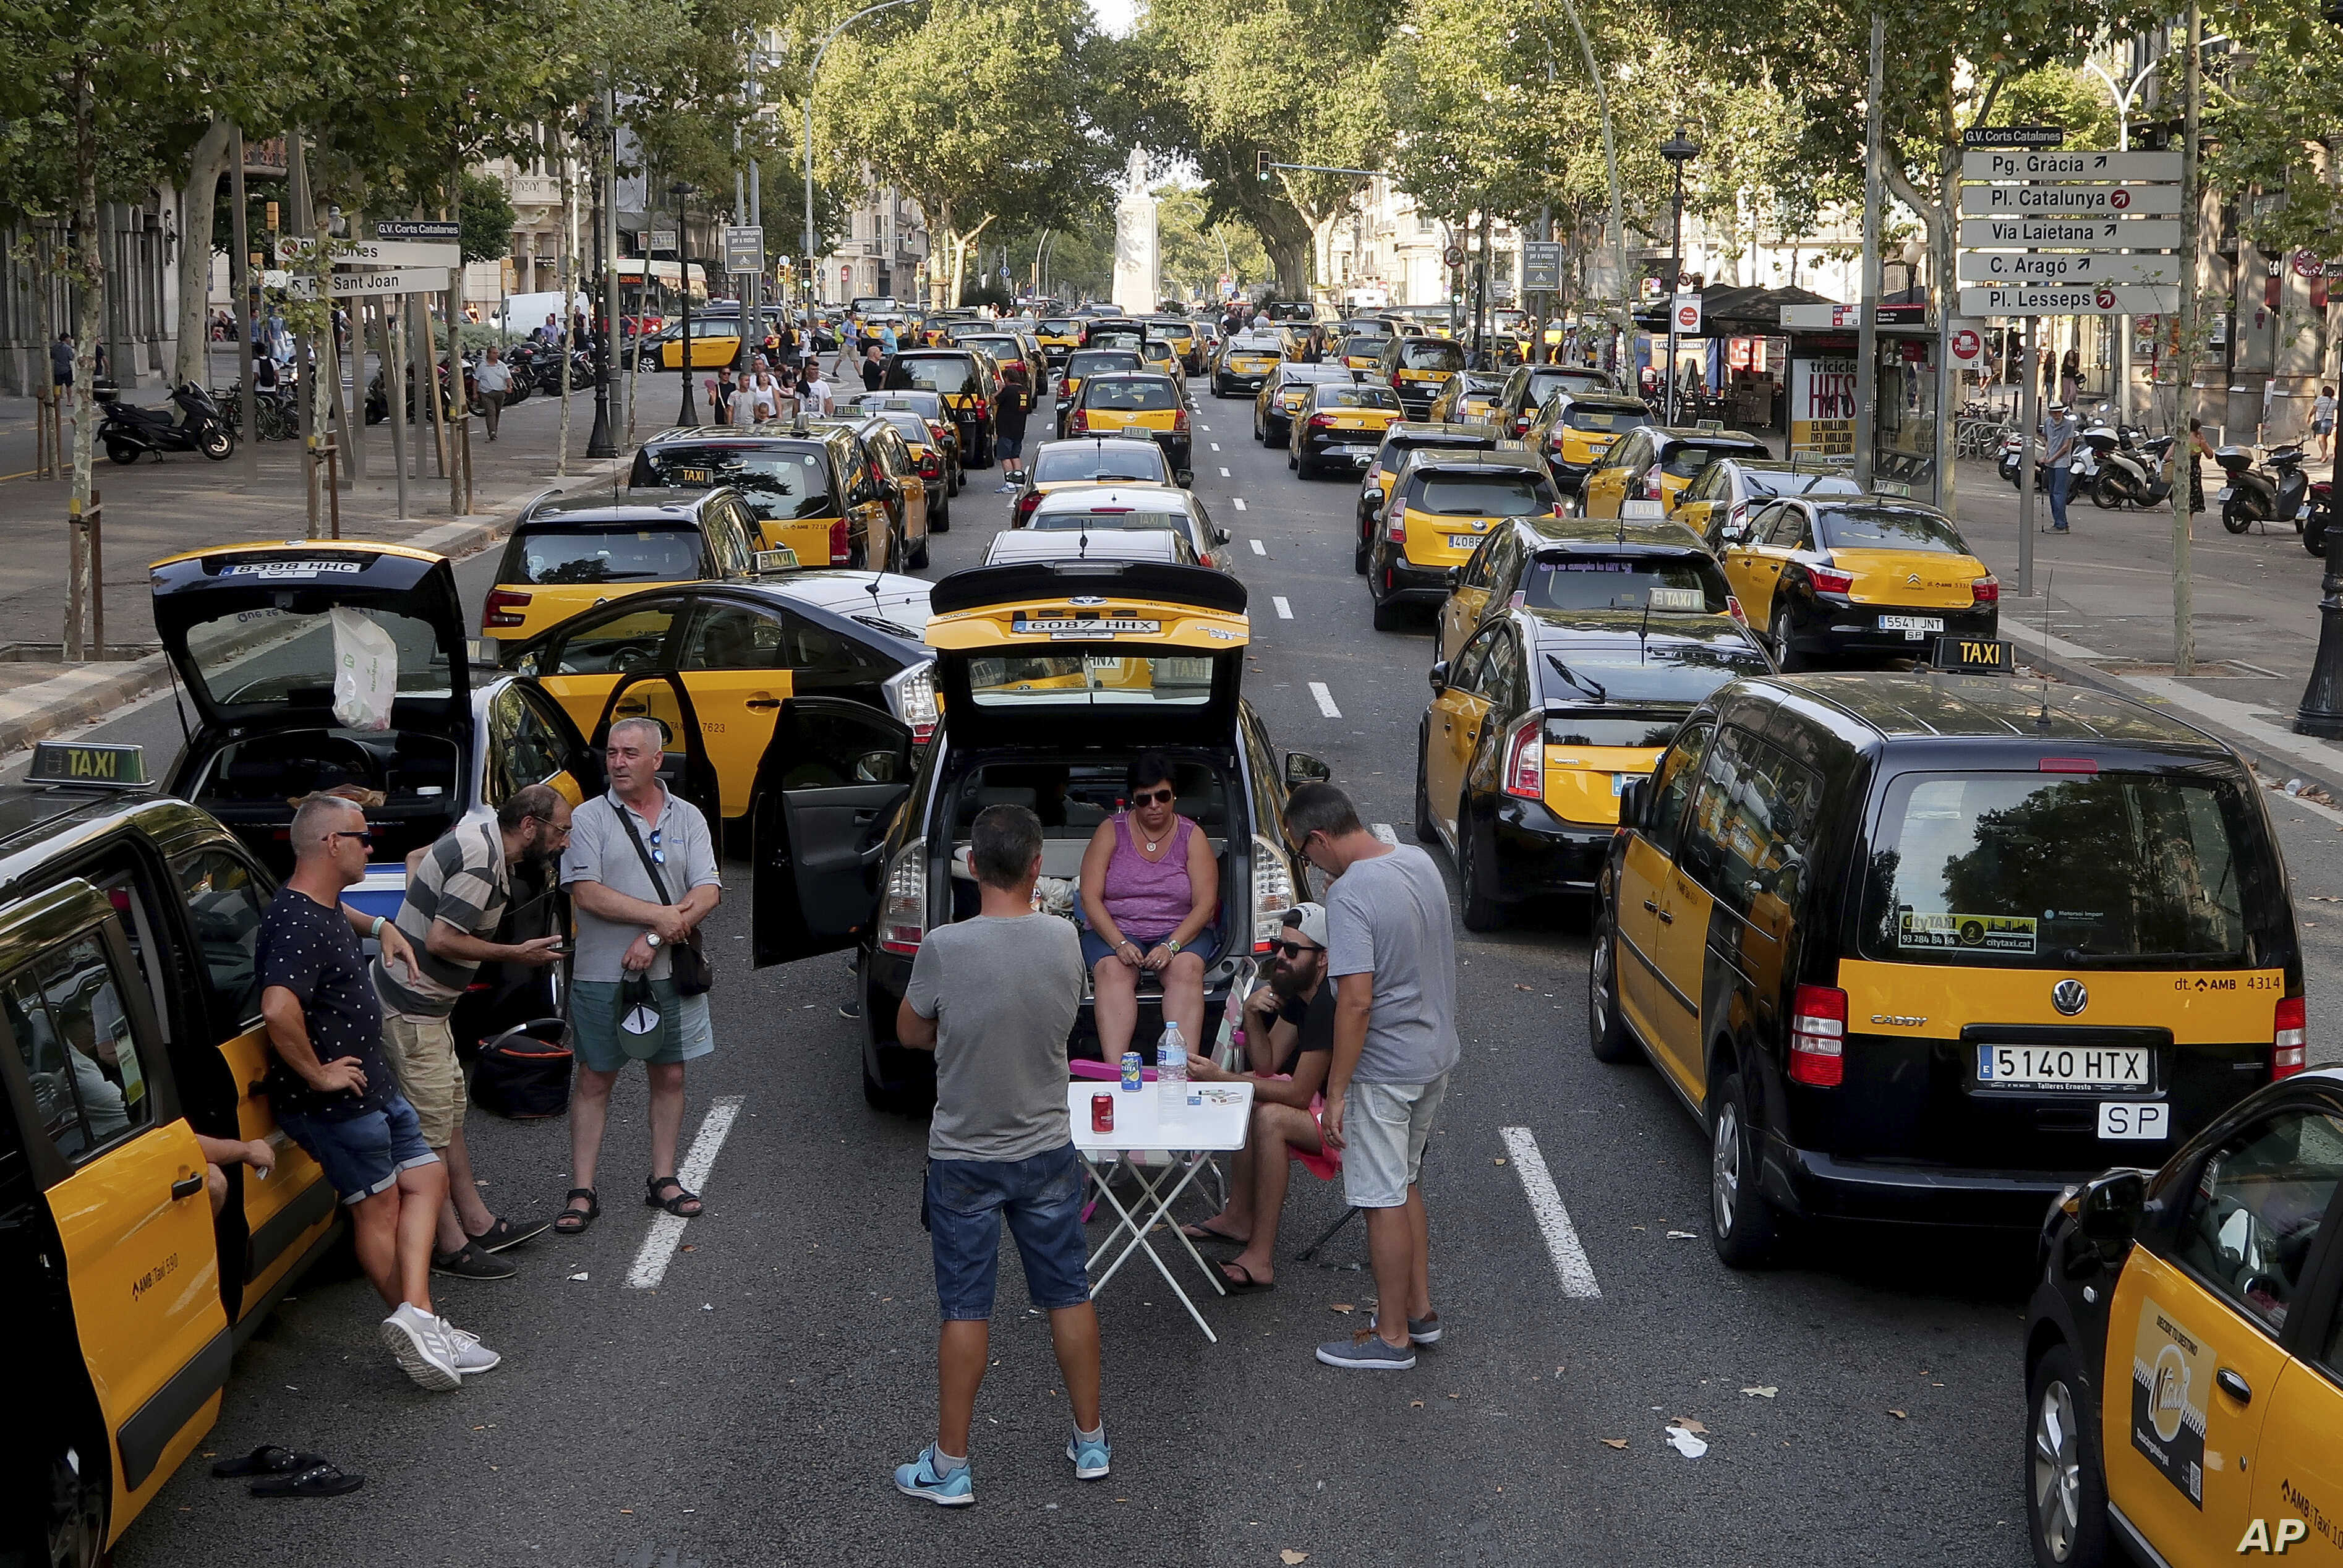 Taxi Strike Targeting Uber Brings Chaos to Spanish Cities